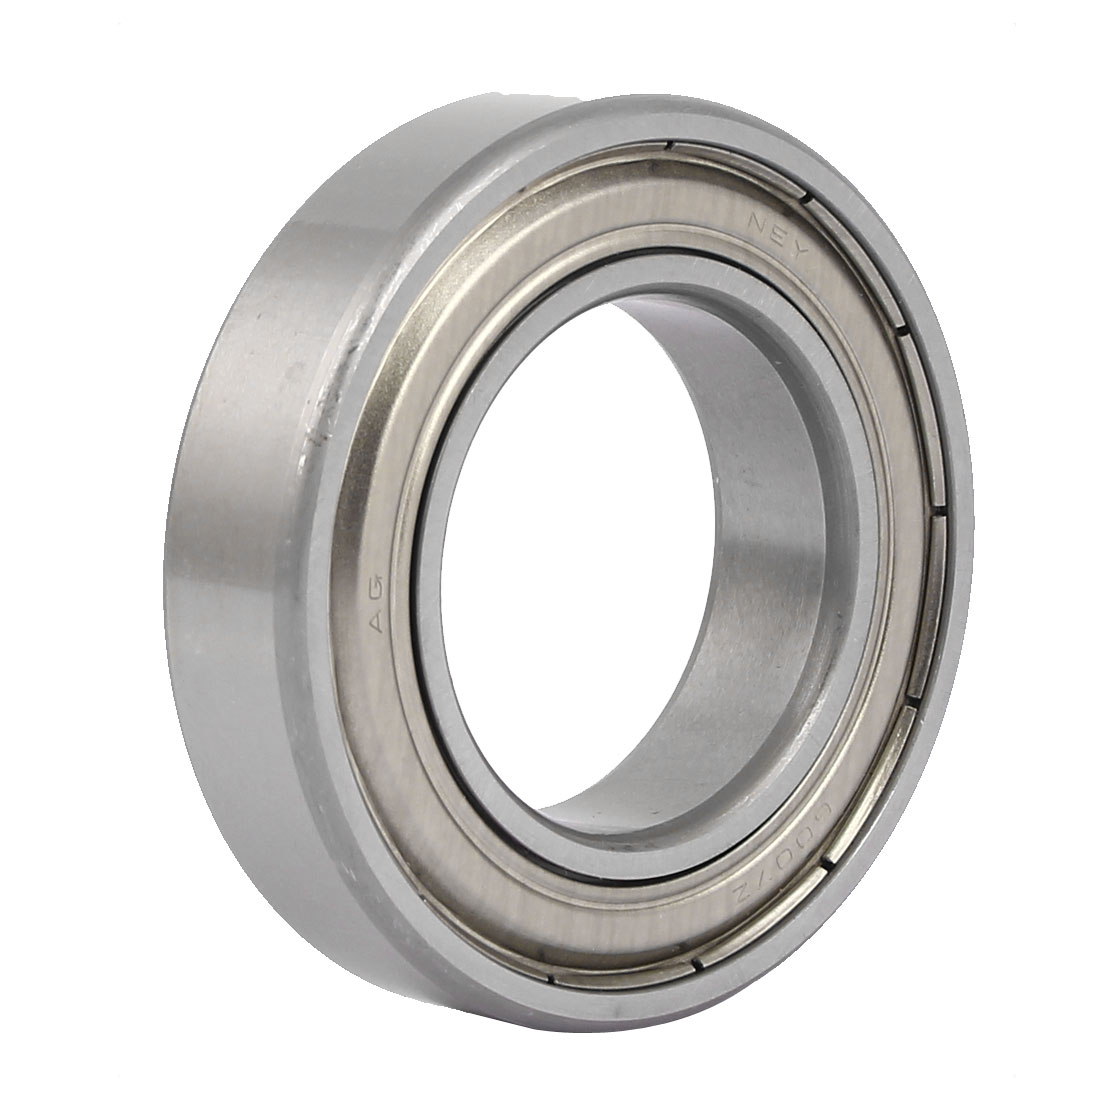 ZZ6007 62mm Outside Dia 34.5mm Inside Dia Shielded Deep Groove Ball Bearing